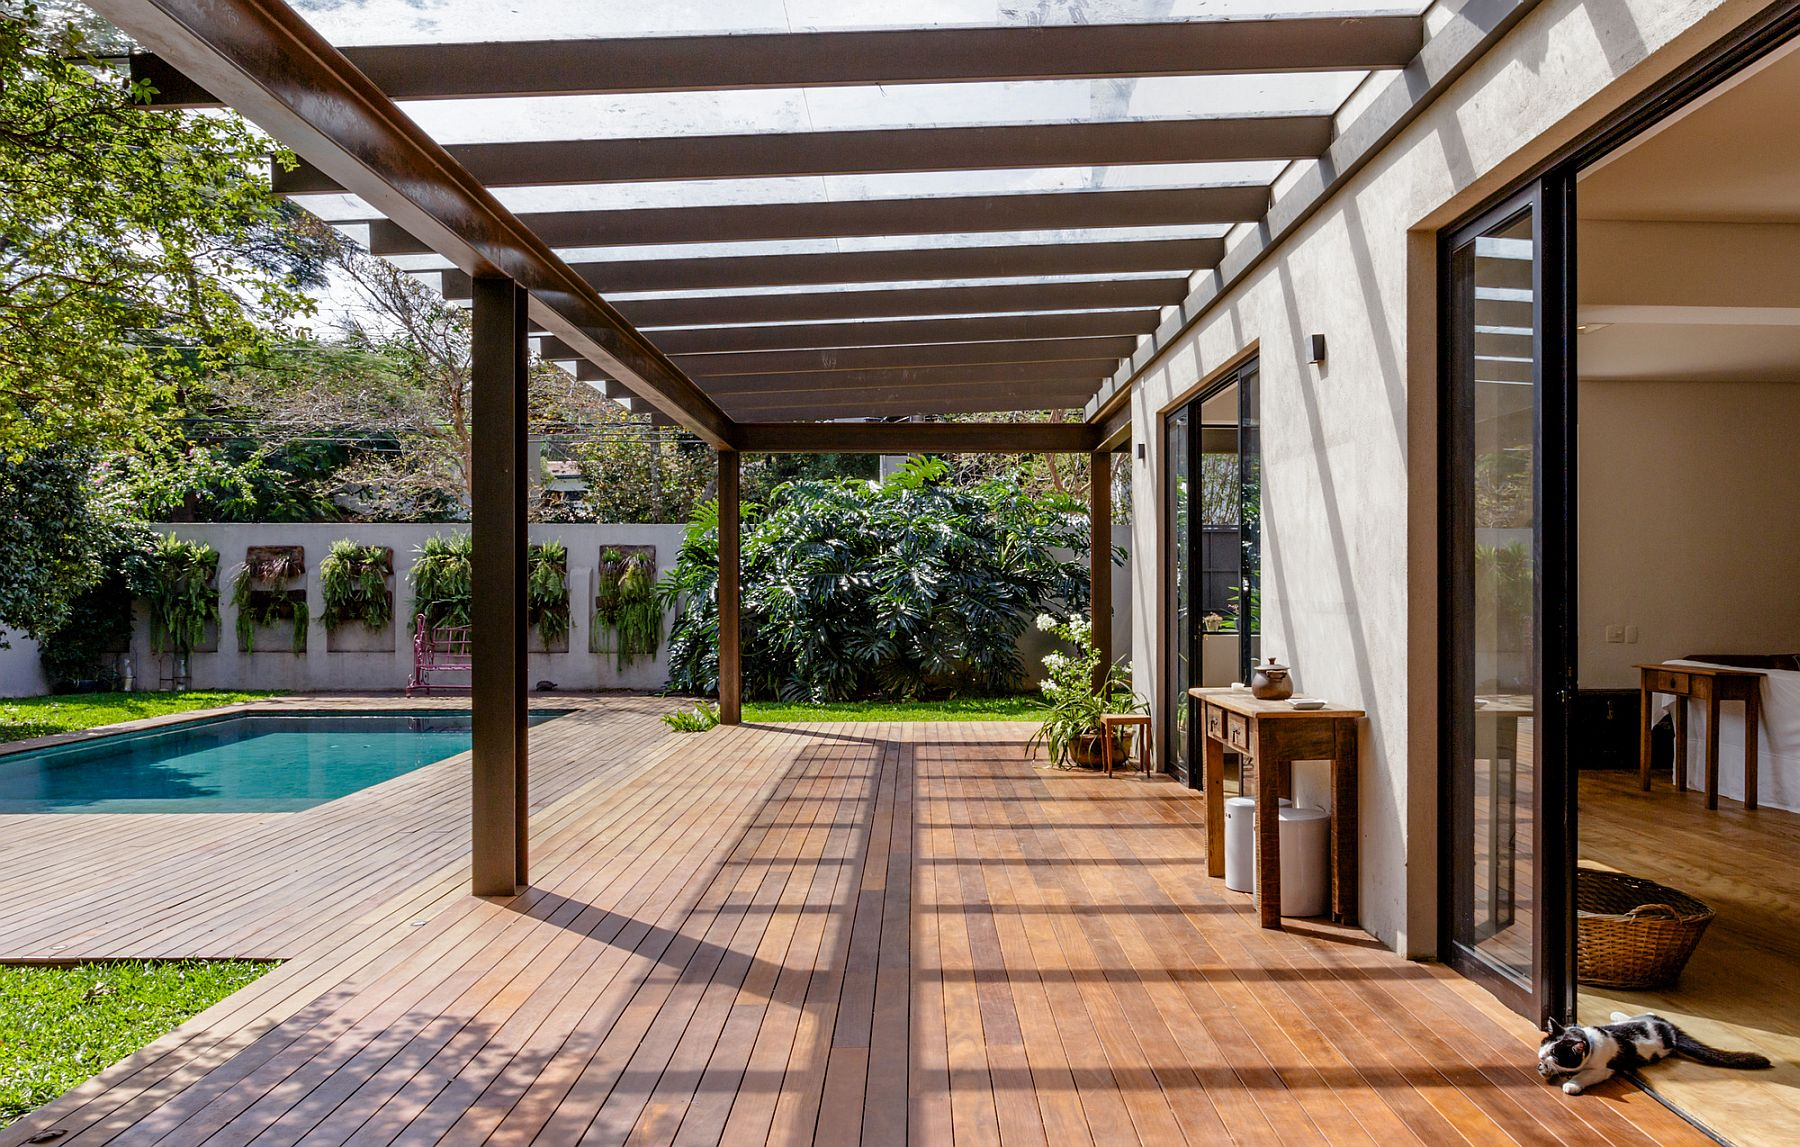 Cor-ten steel structure of the pergola offers shade